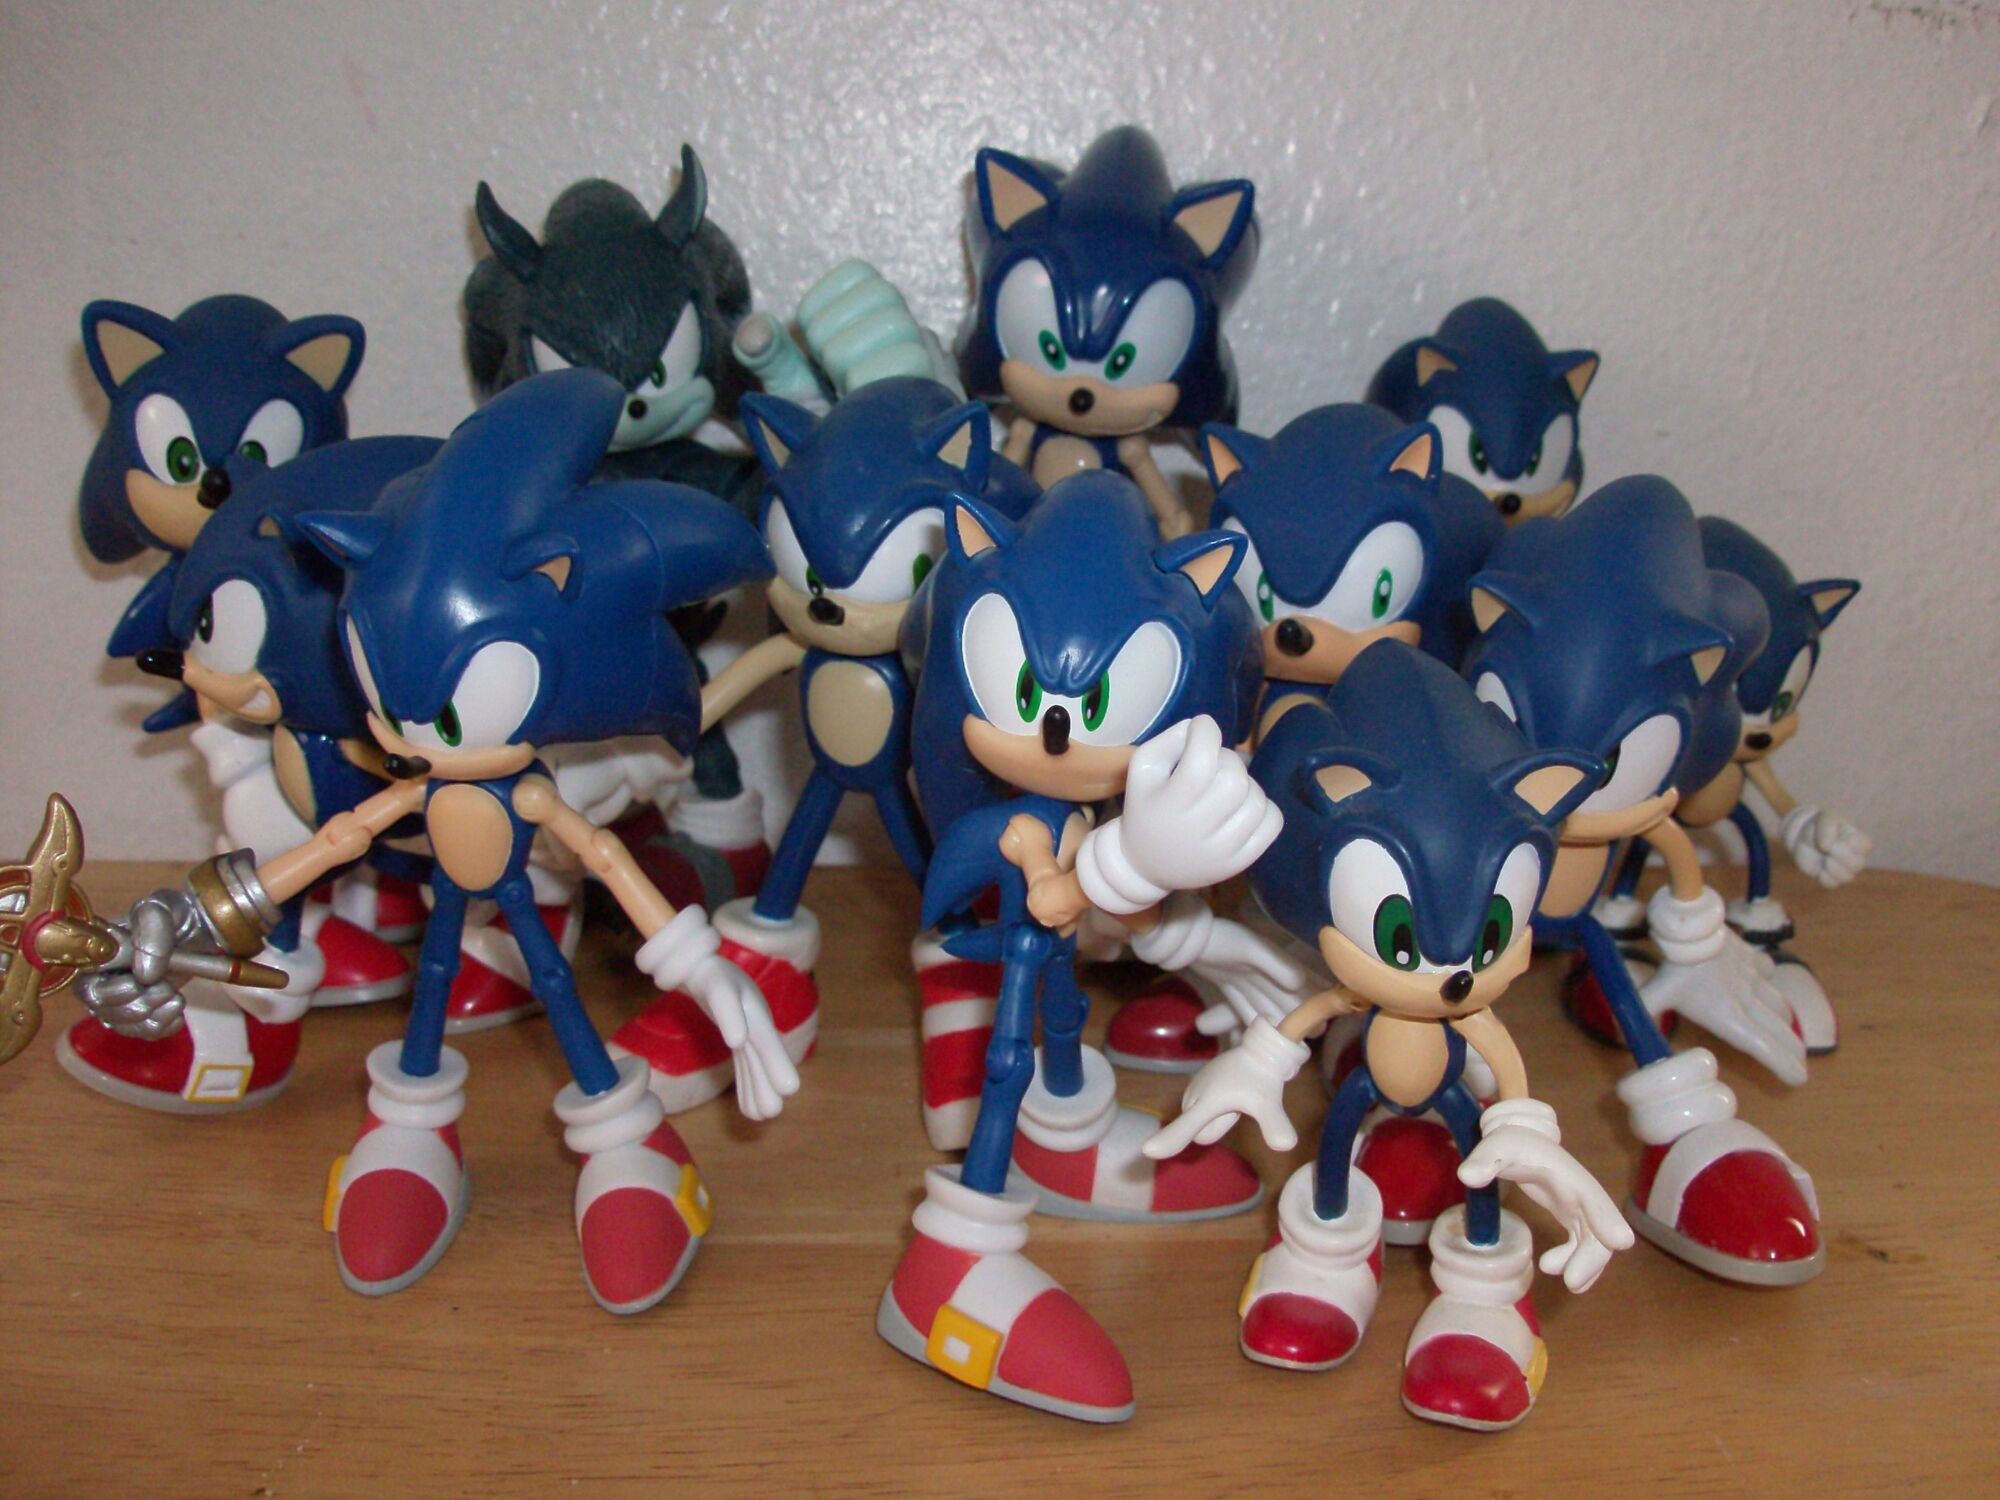 Sonic The Hedgehog Toys Sonic News Network Fandom Powered By Wikia